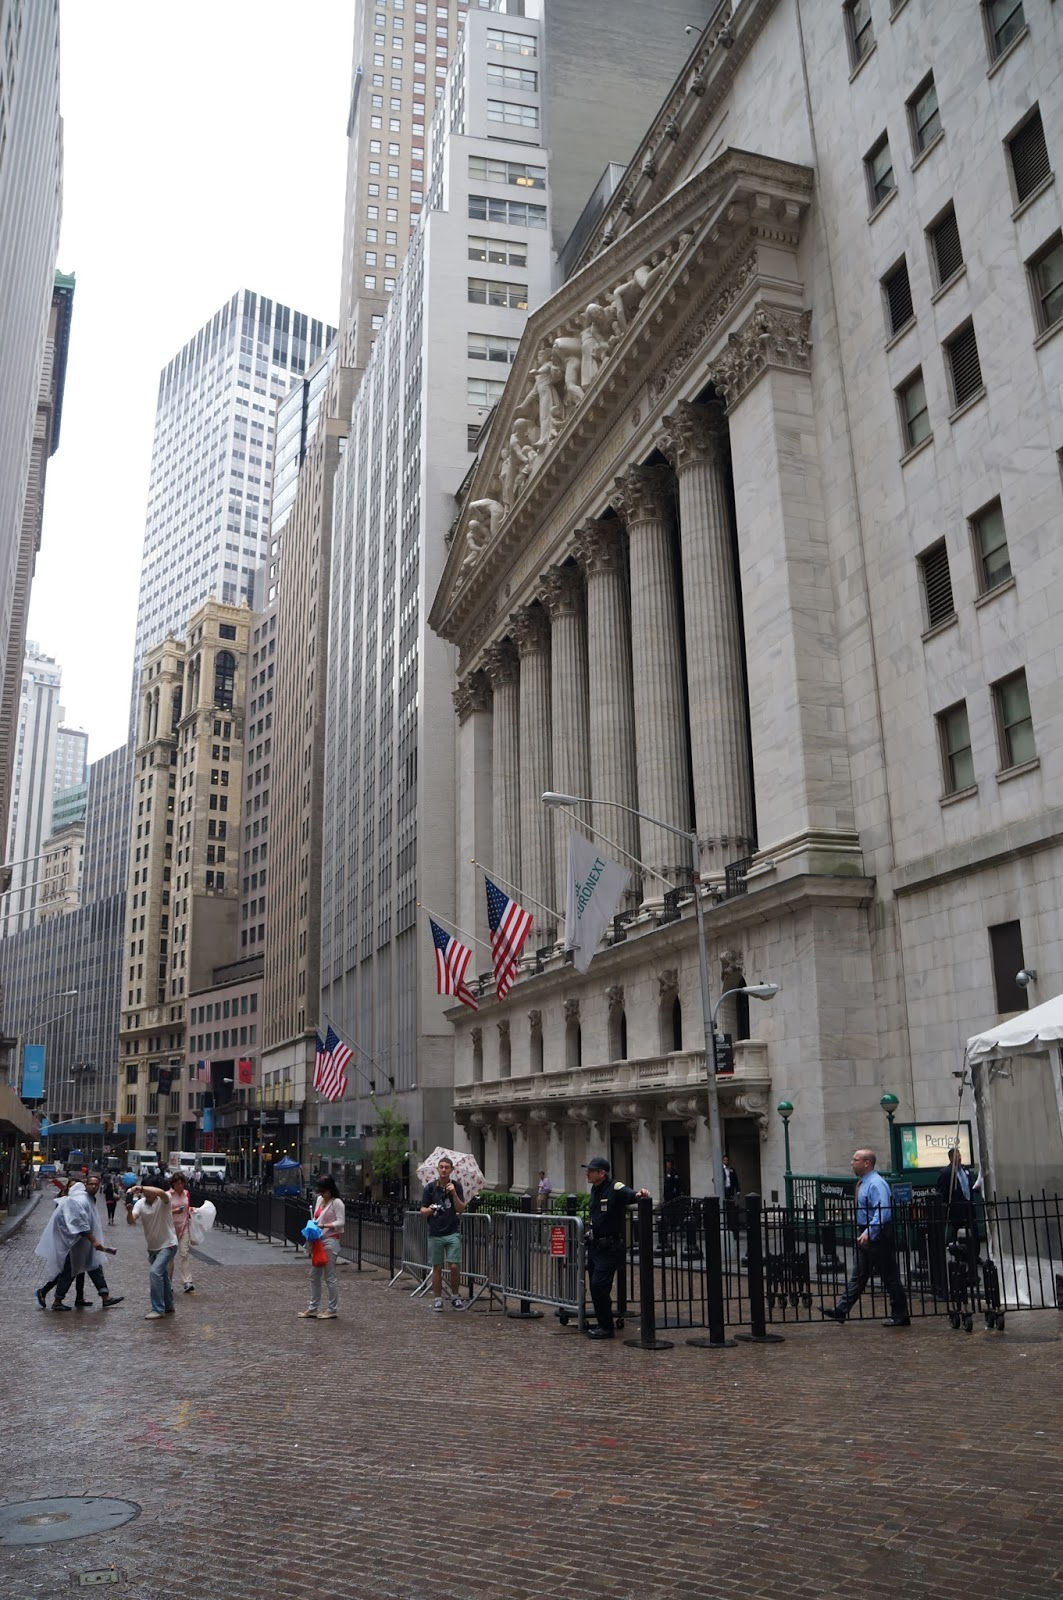 wall street, capitalism, money, new york stock exchange, NYC, New York, 10 free things to do, free things to do in NYC, travel, New York, explore, adventures, photography, usa, tourism, tourists, federal hall, george washington